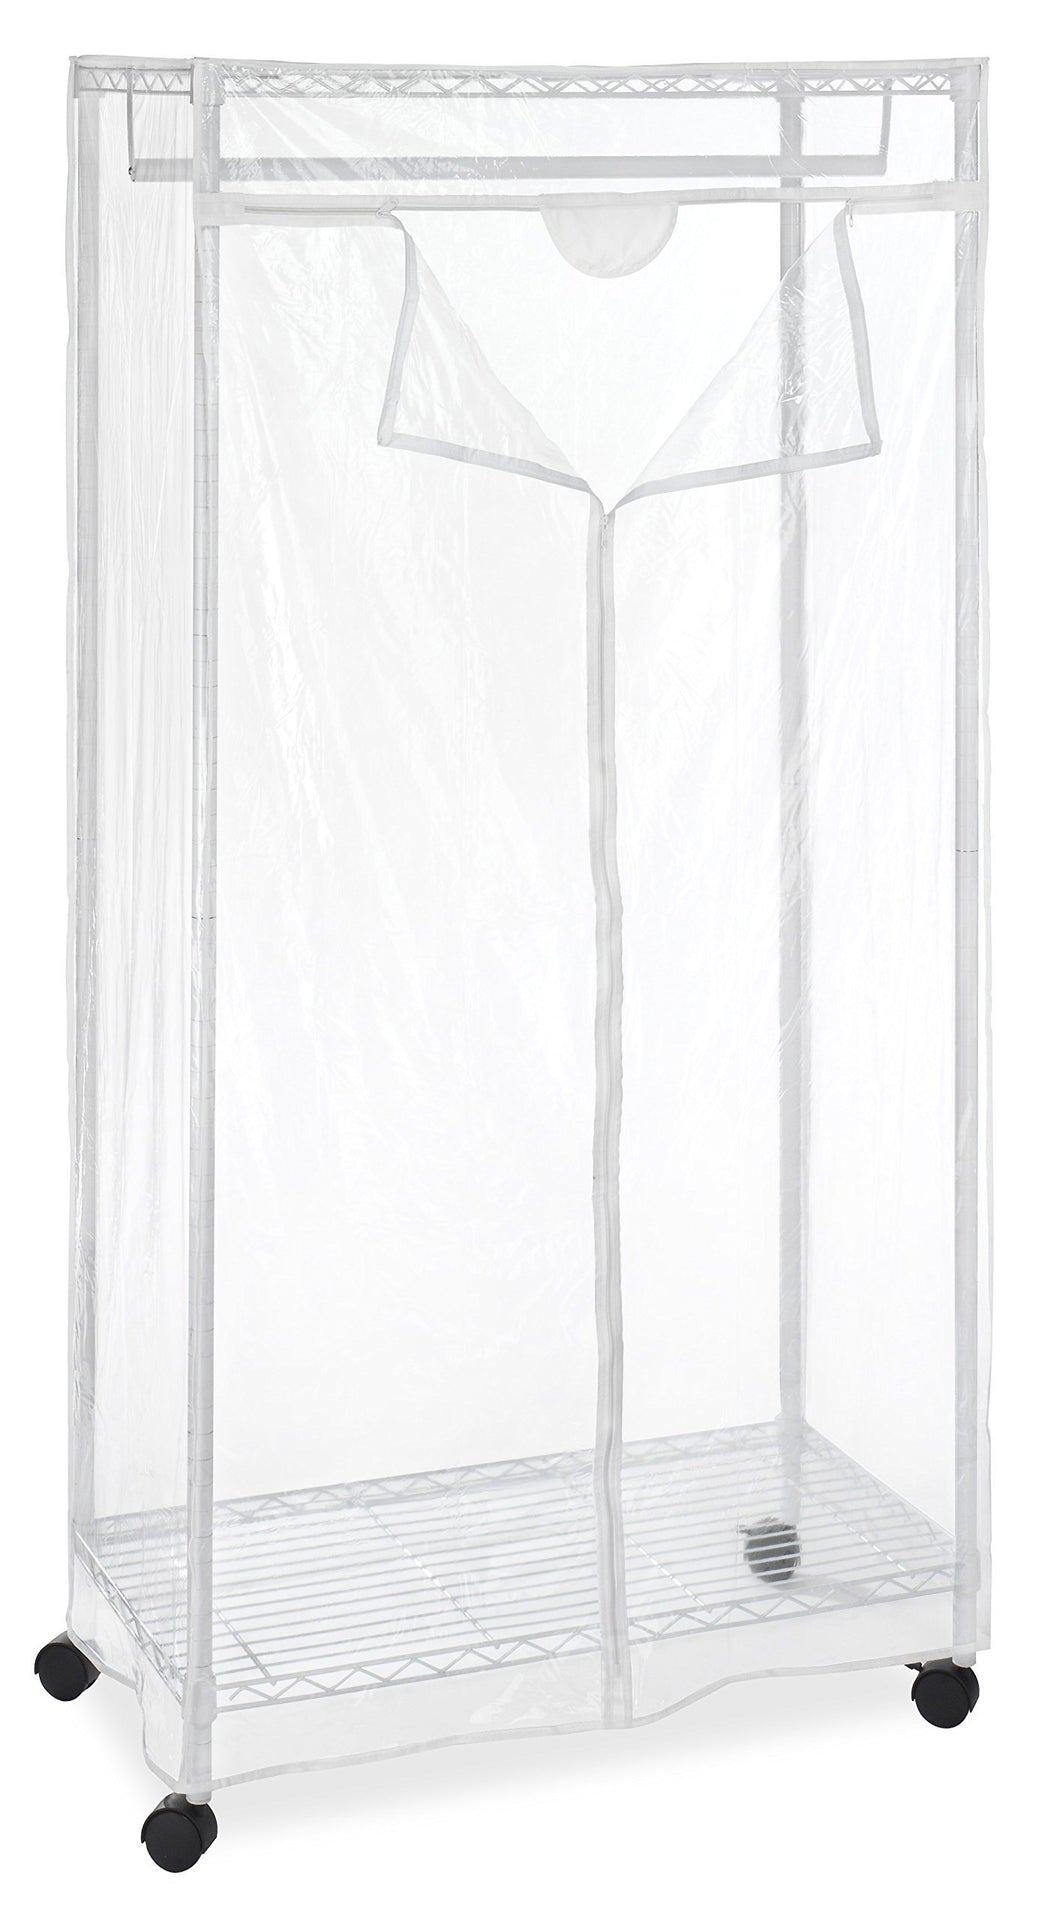 Storage organizer whitmor supreme clothes closet clear